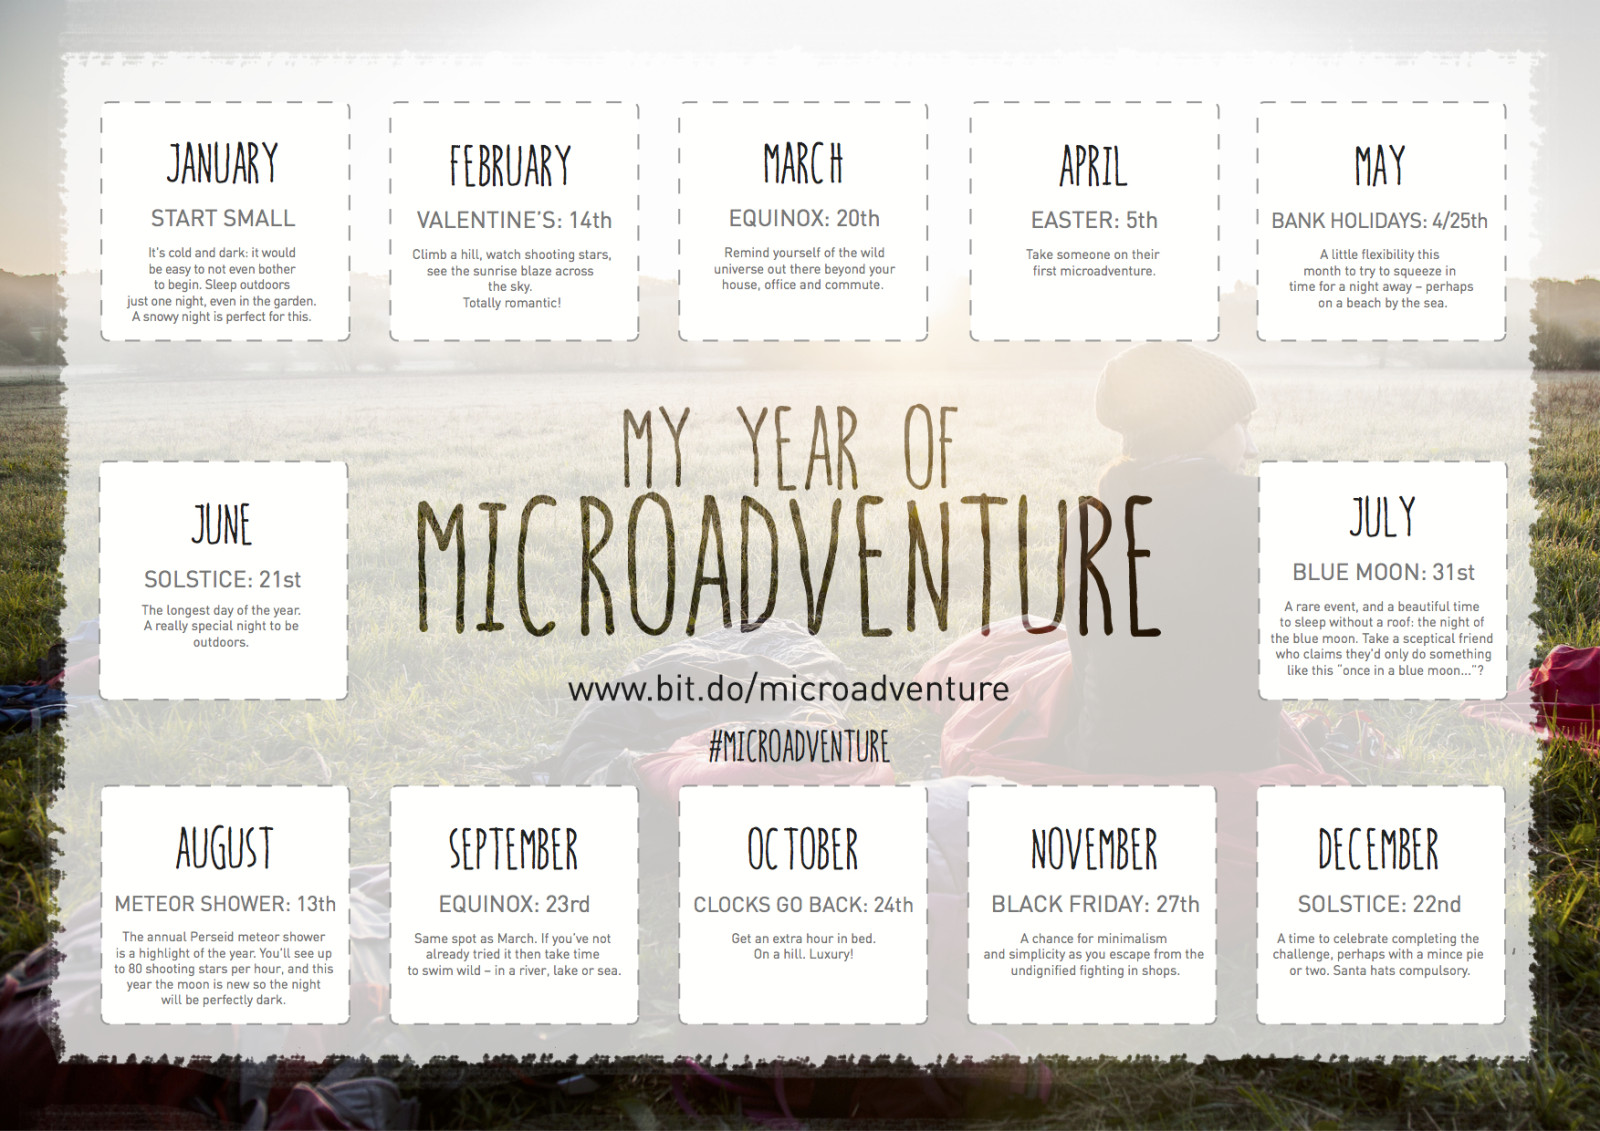 My Year Of Microadventure